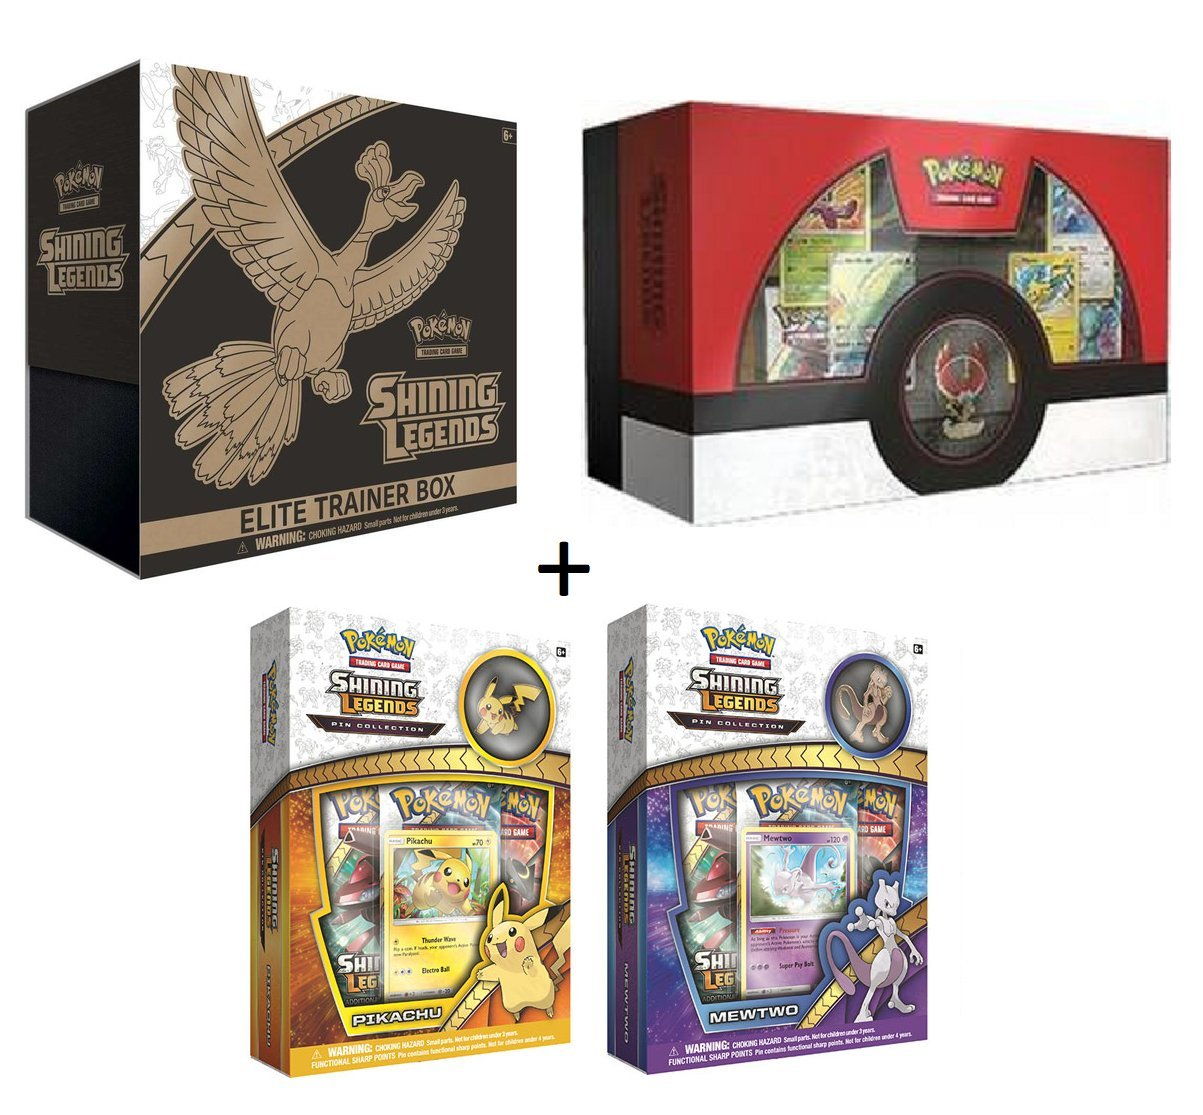 Pokemon TCG: Shining Legends Complete Collectors Set (Super Premium Ho-Oh Collection Box, Elite Trainer Box, MewTwo & Pikachu Pin Collector Boxes) by unbranded